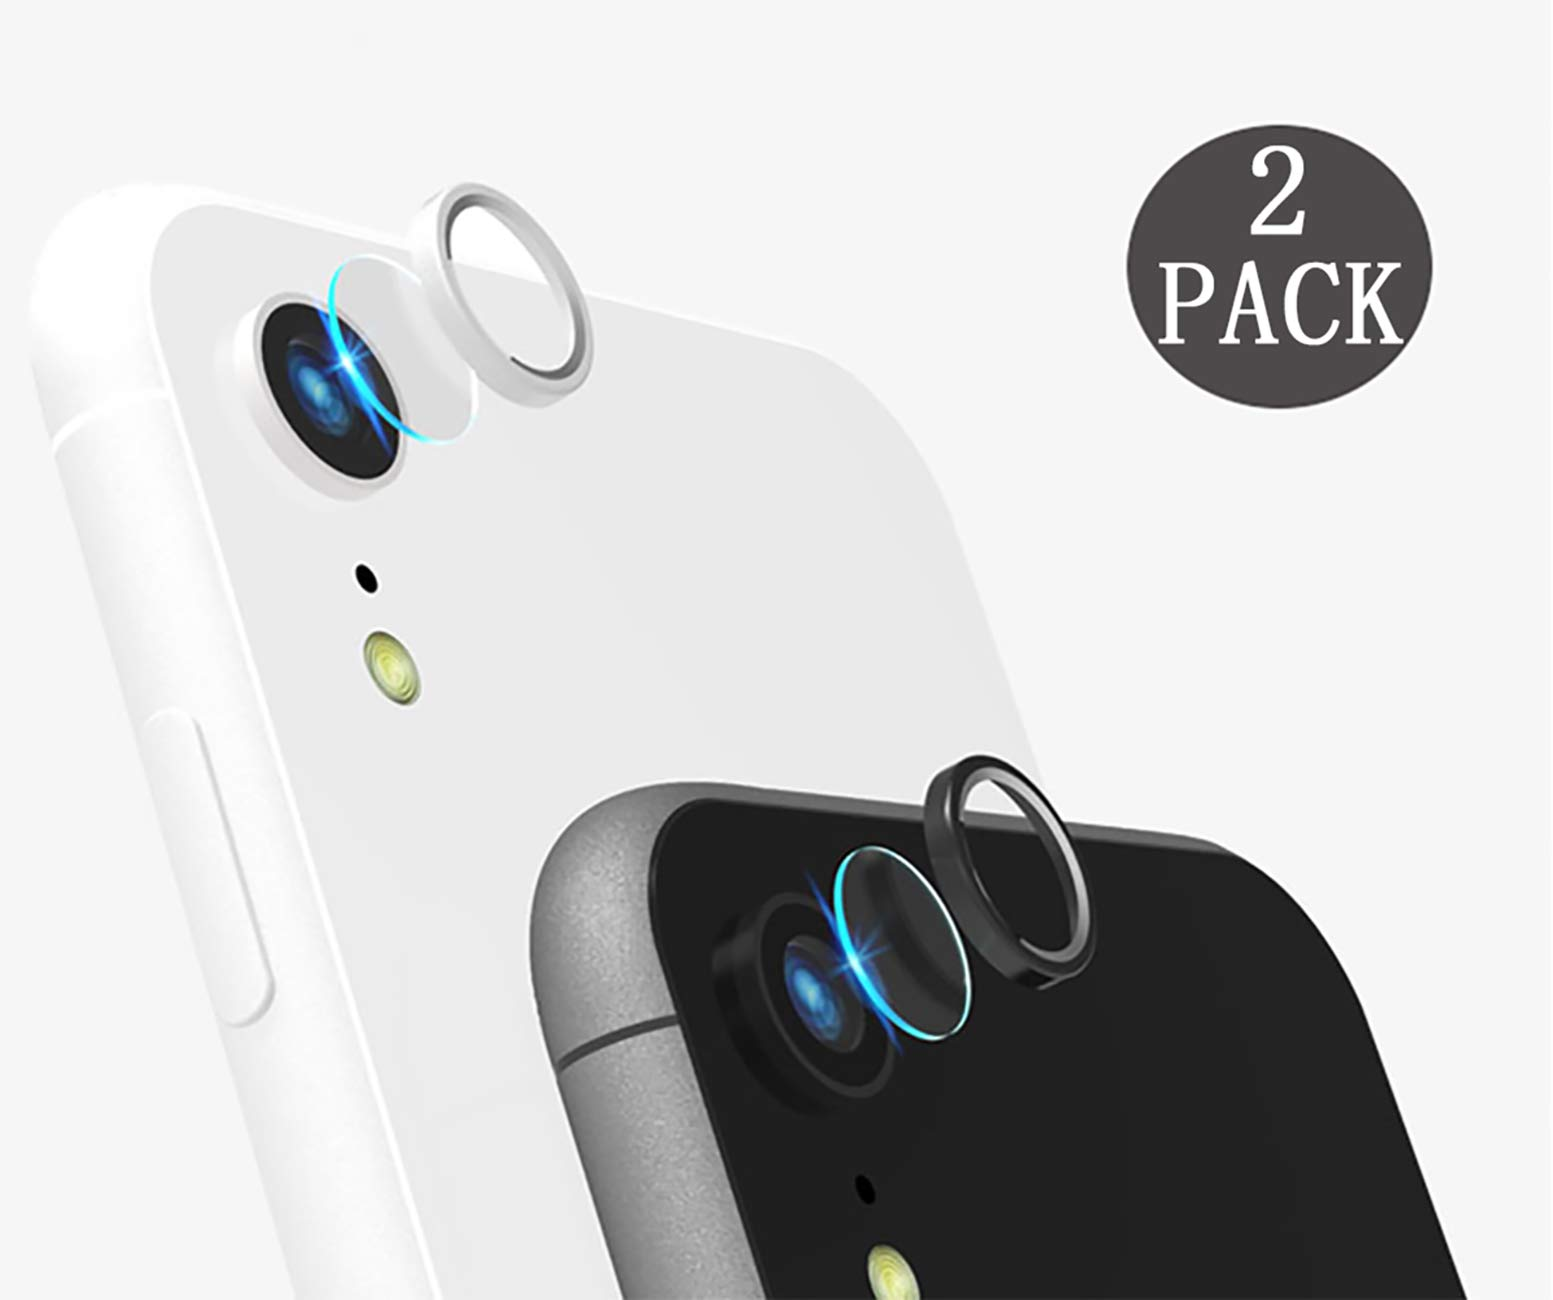 [2 Pack] Tempered-Glass Camera Protector for iPhone Xr 2.5D Ultra Thin HD Anti-Fingerprint Protective Clear Film for iPhone Lens with 2 Phone Camera Covers (iPhone Xr)